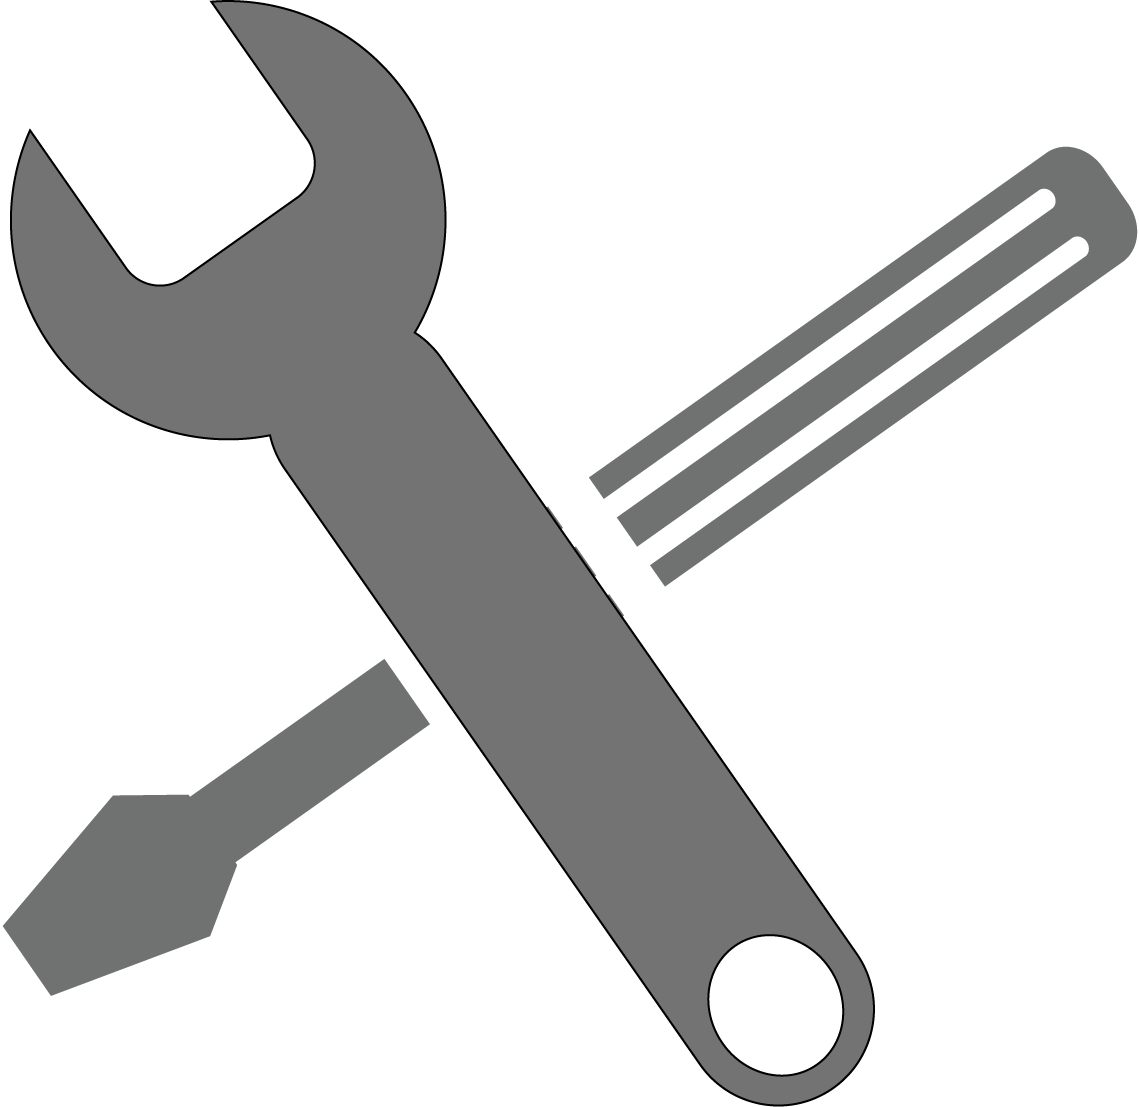 Car with wrench clipart picture library stock Clipart Best Wrench Png #19773 - Free Icons and PNG Backgrounds picture library stock